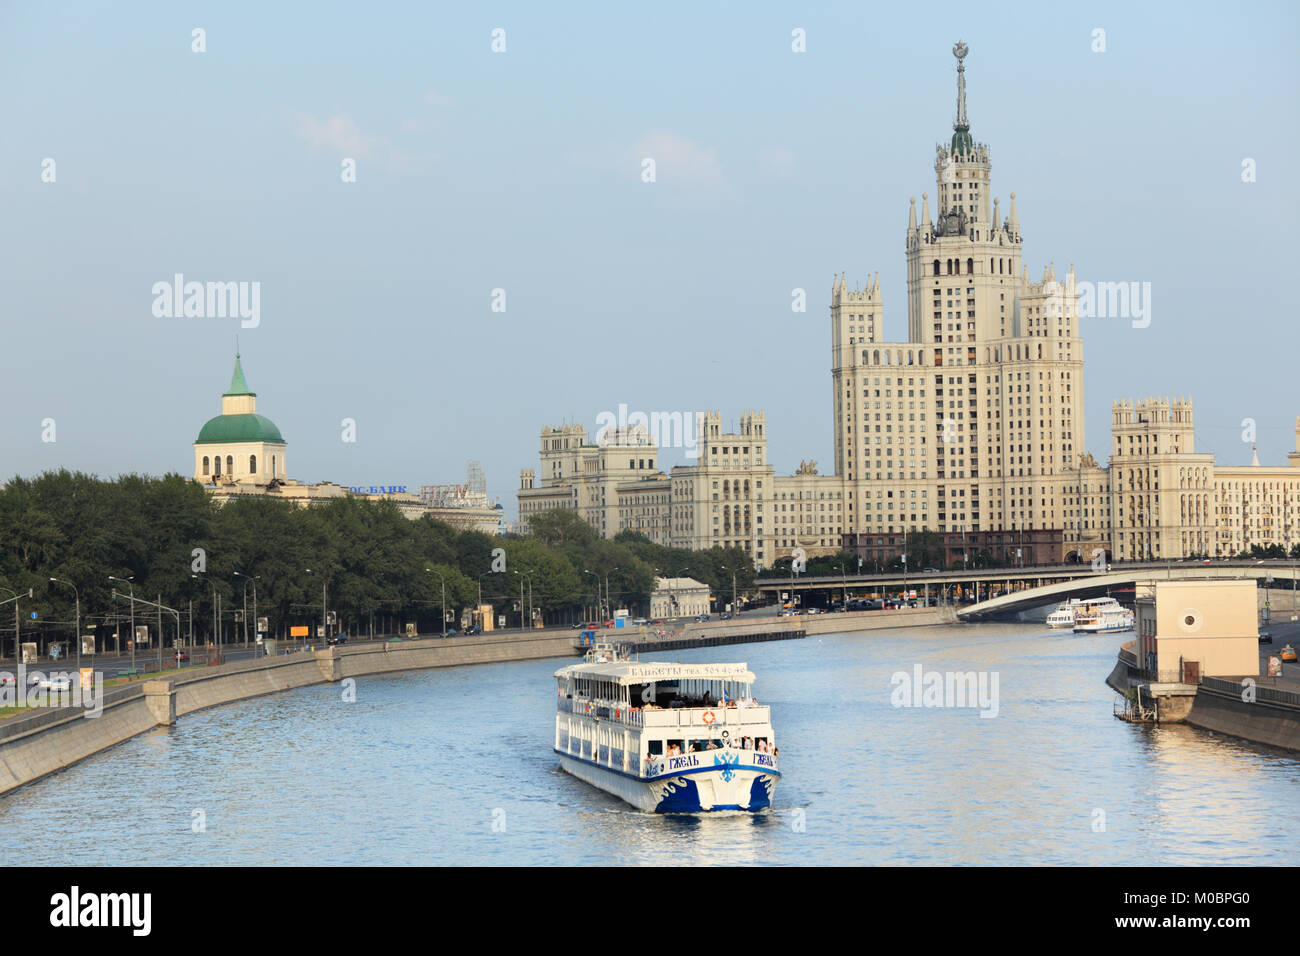 Moscow, Russia - July 31, 2010: Trip boat on Moscow river against one of Seven Sisters in Moscow, Russia on July 31, 2010 Stock Photo